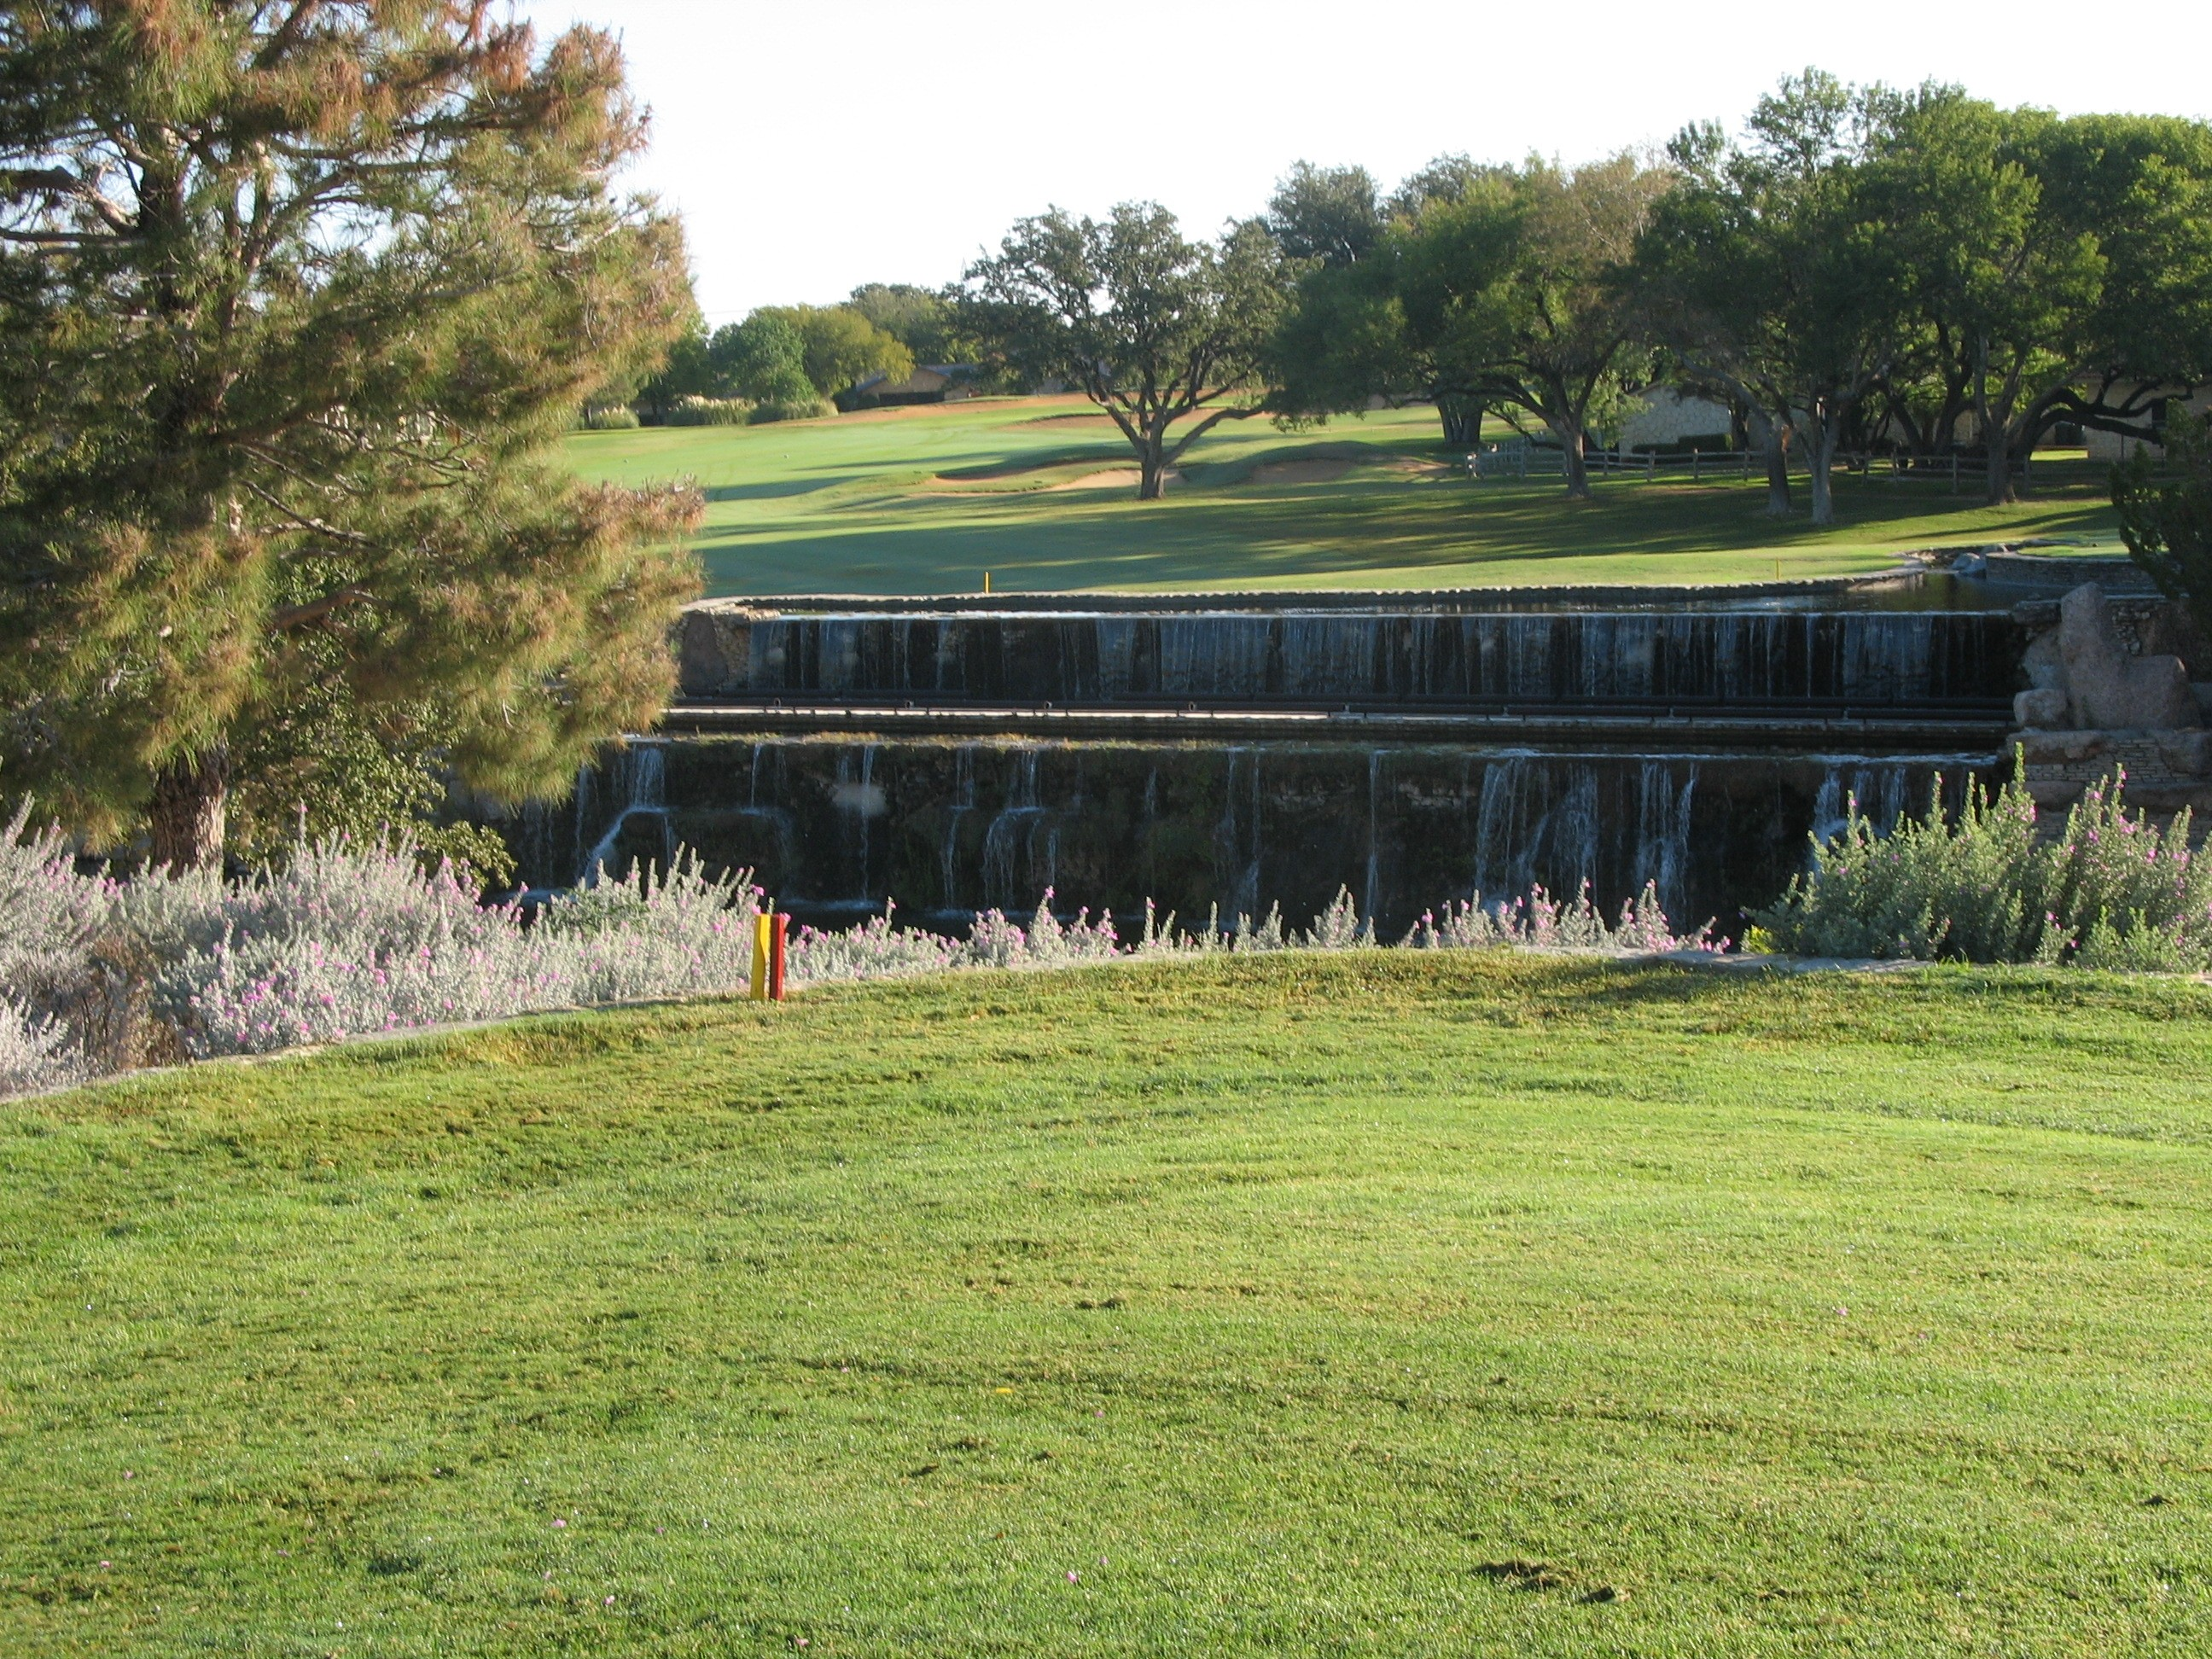 A golf course with a pond in the middle